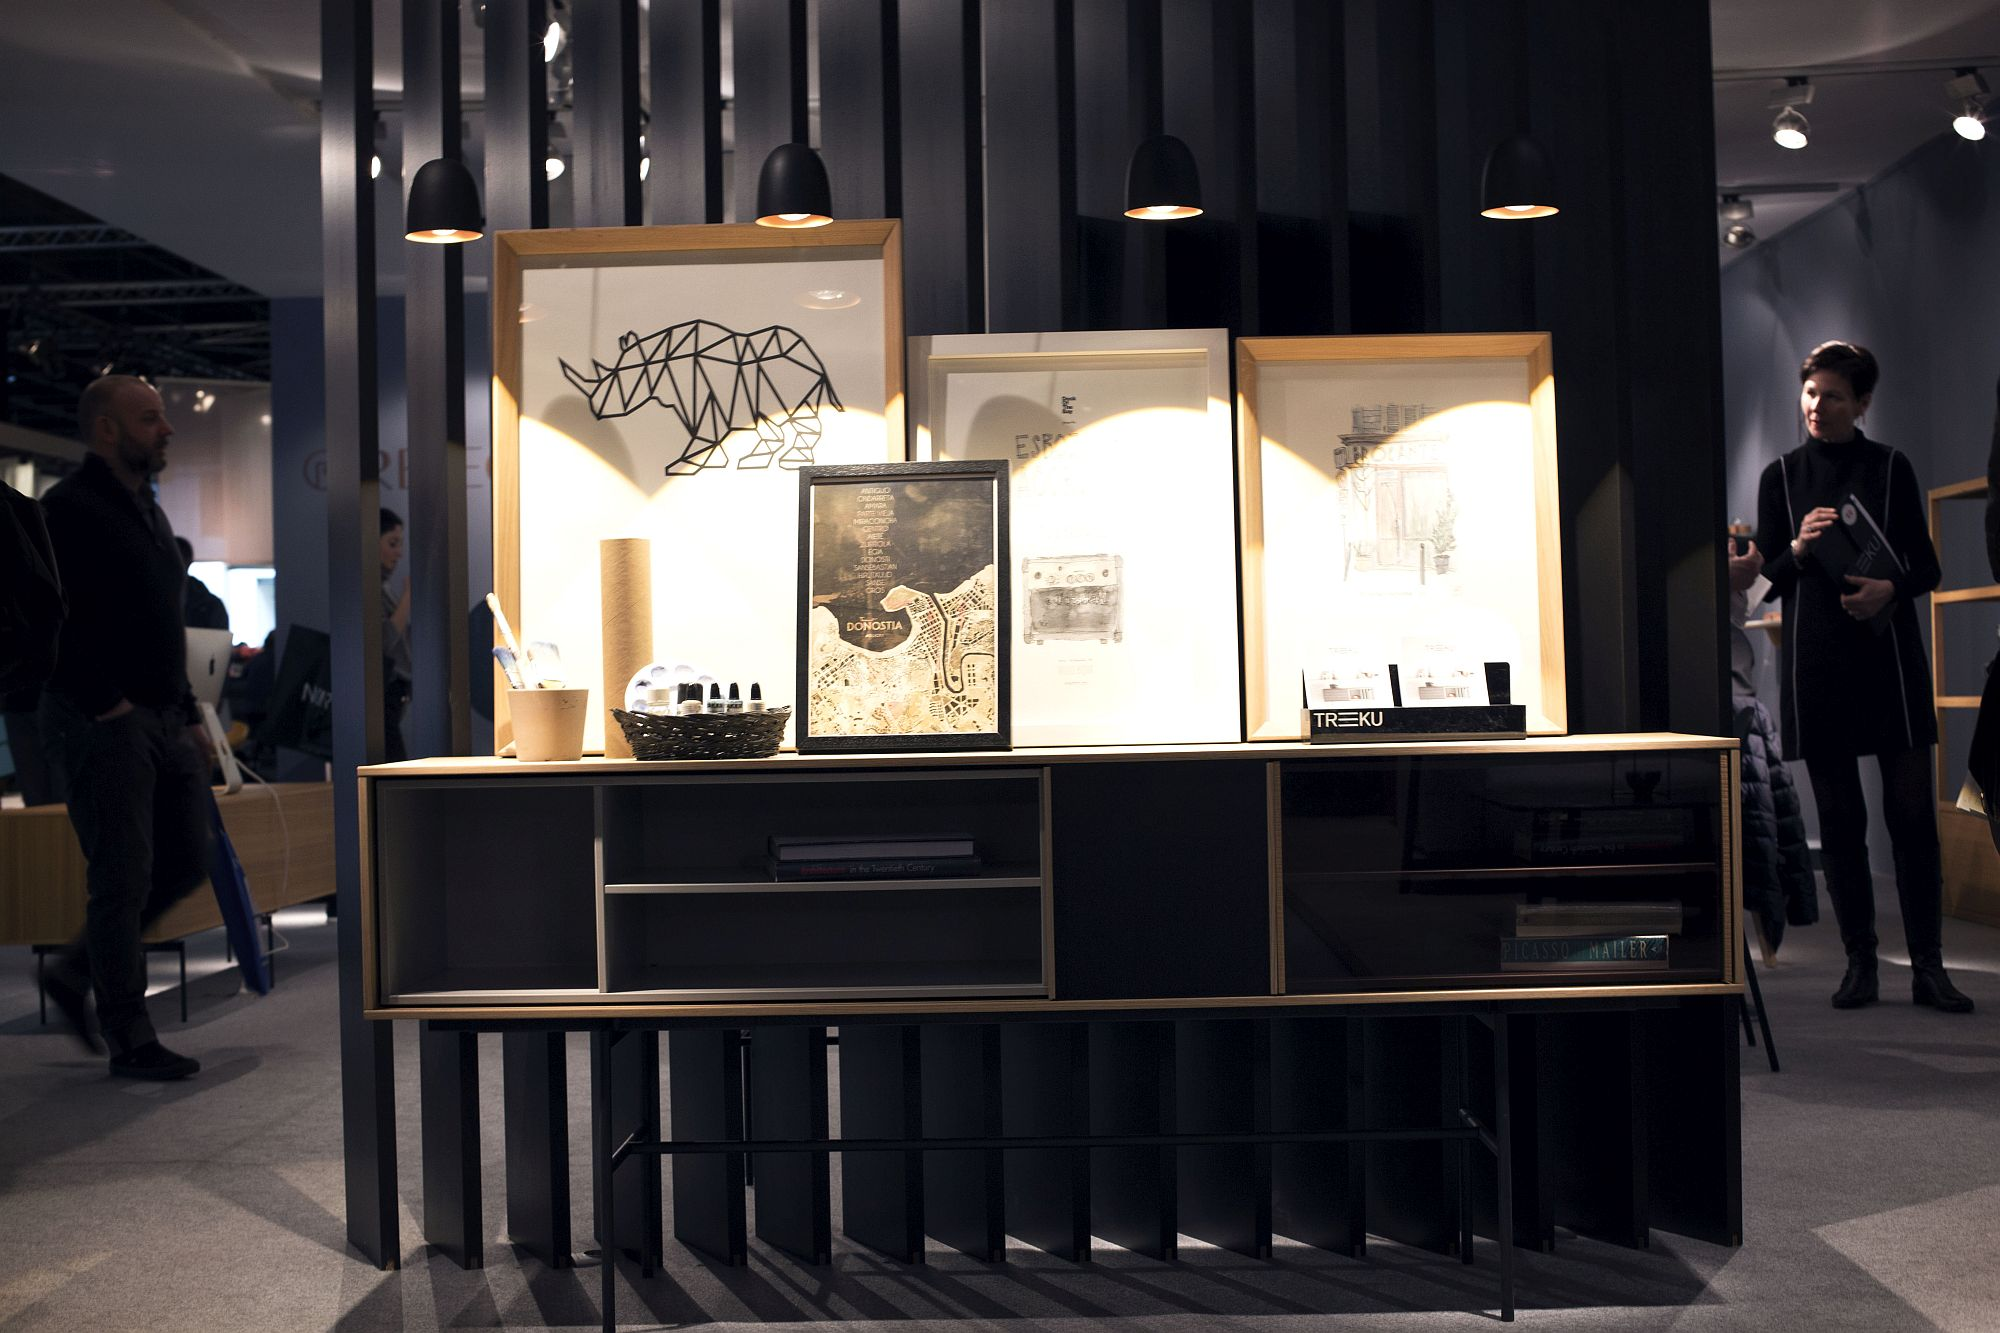 Fashionable sideboard for the living room also allows you to display artwork with ease